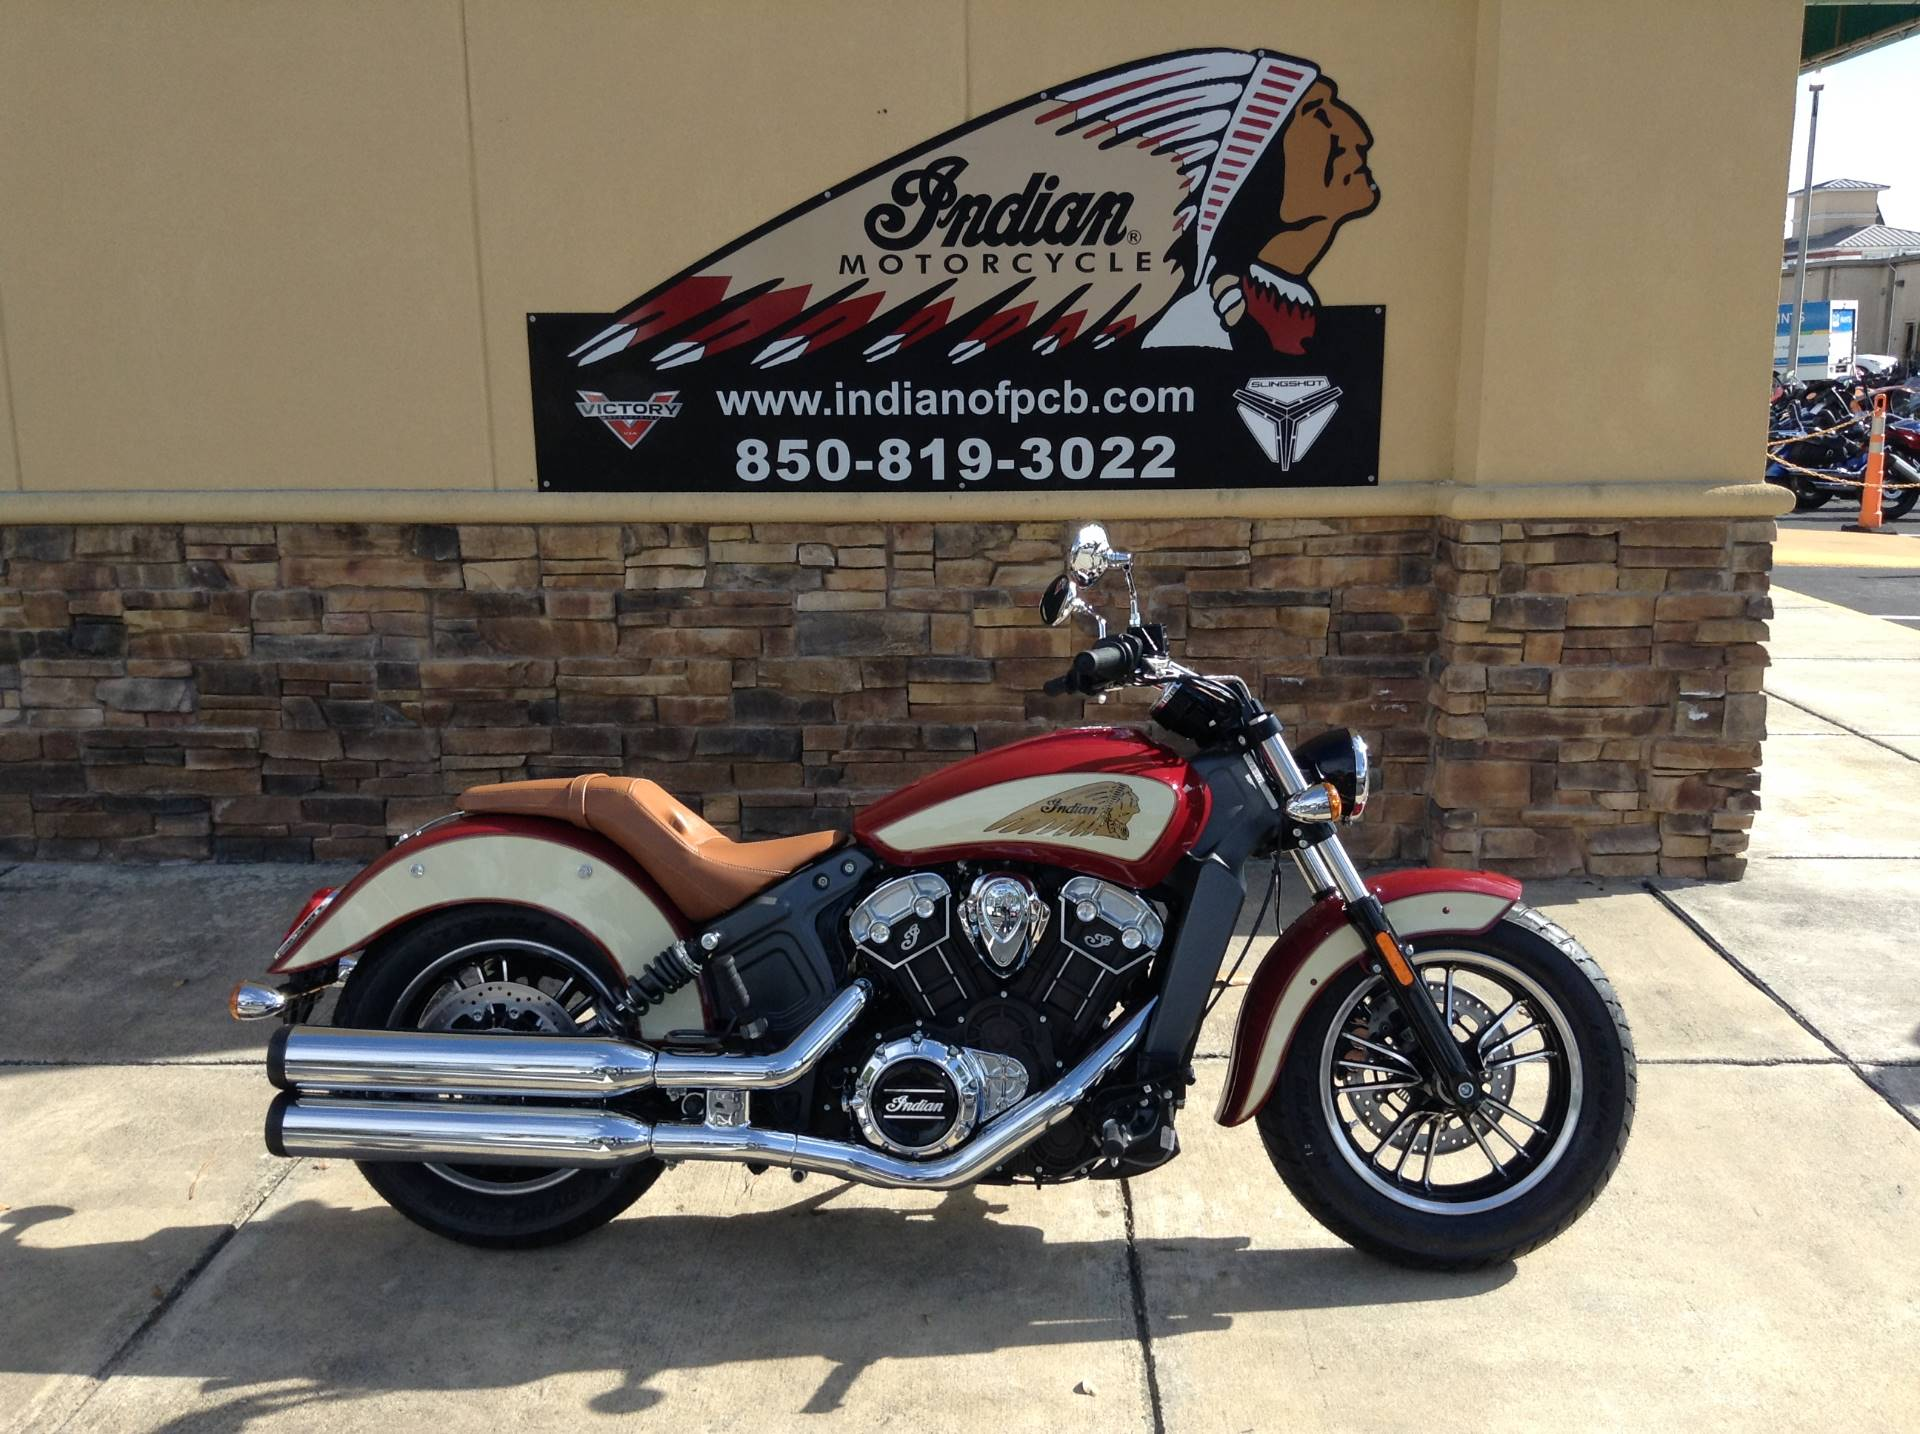 2020 Indian SCOUT ABS in Panama City Beach, Florida - Photo 1